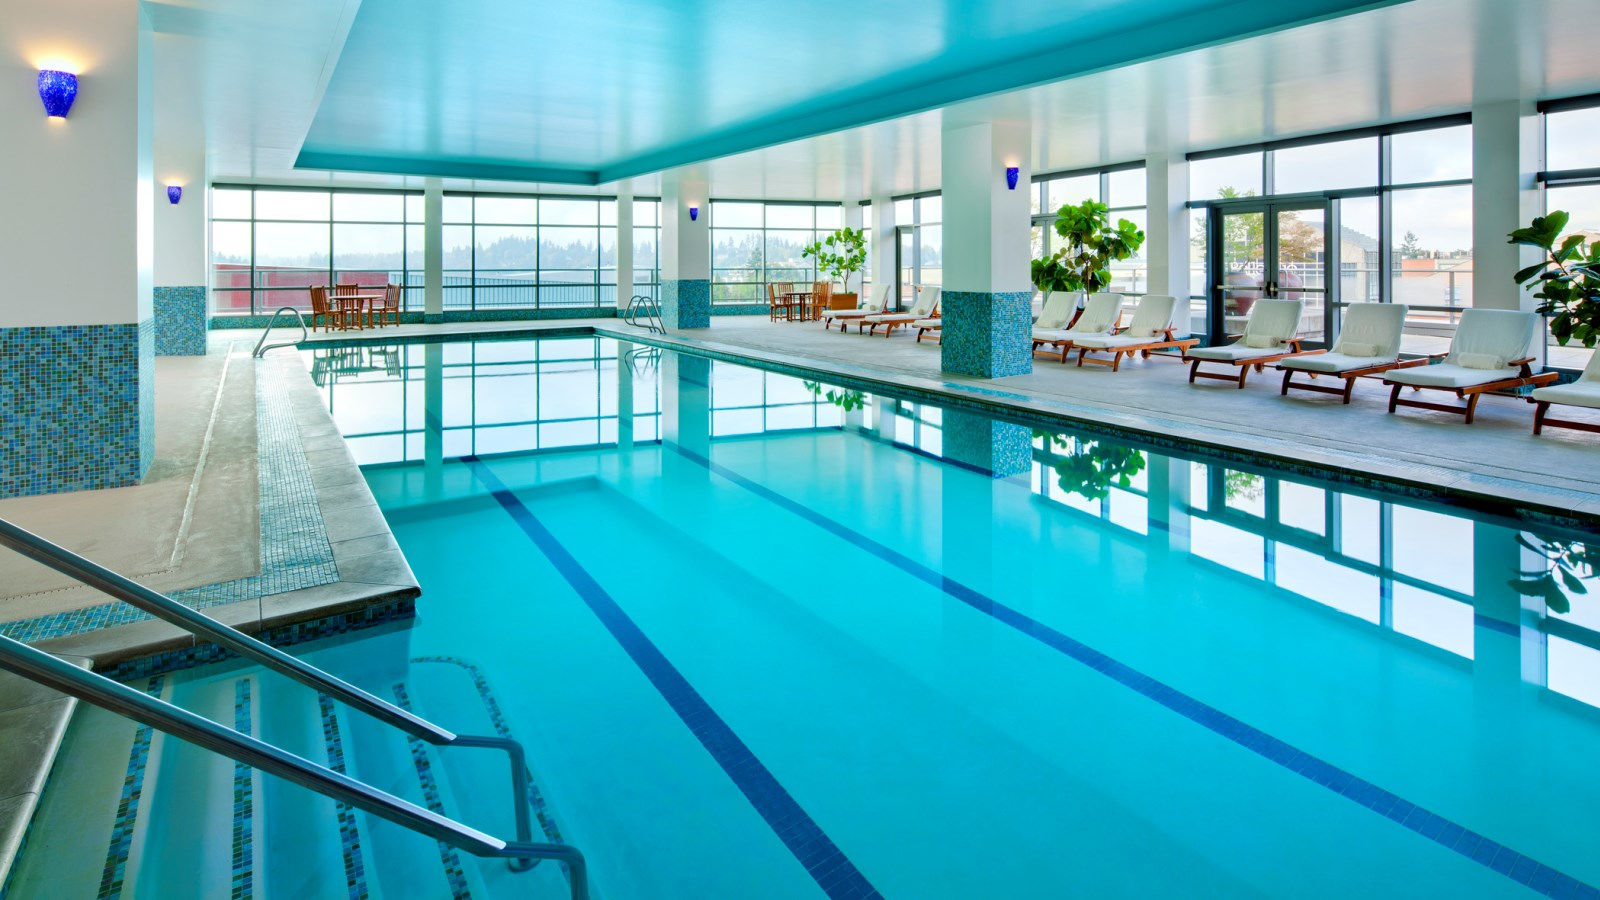 Bellevue Hotel Features - Indoor Pool